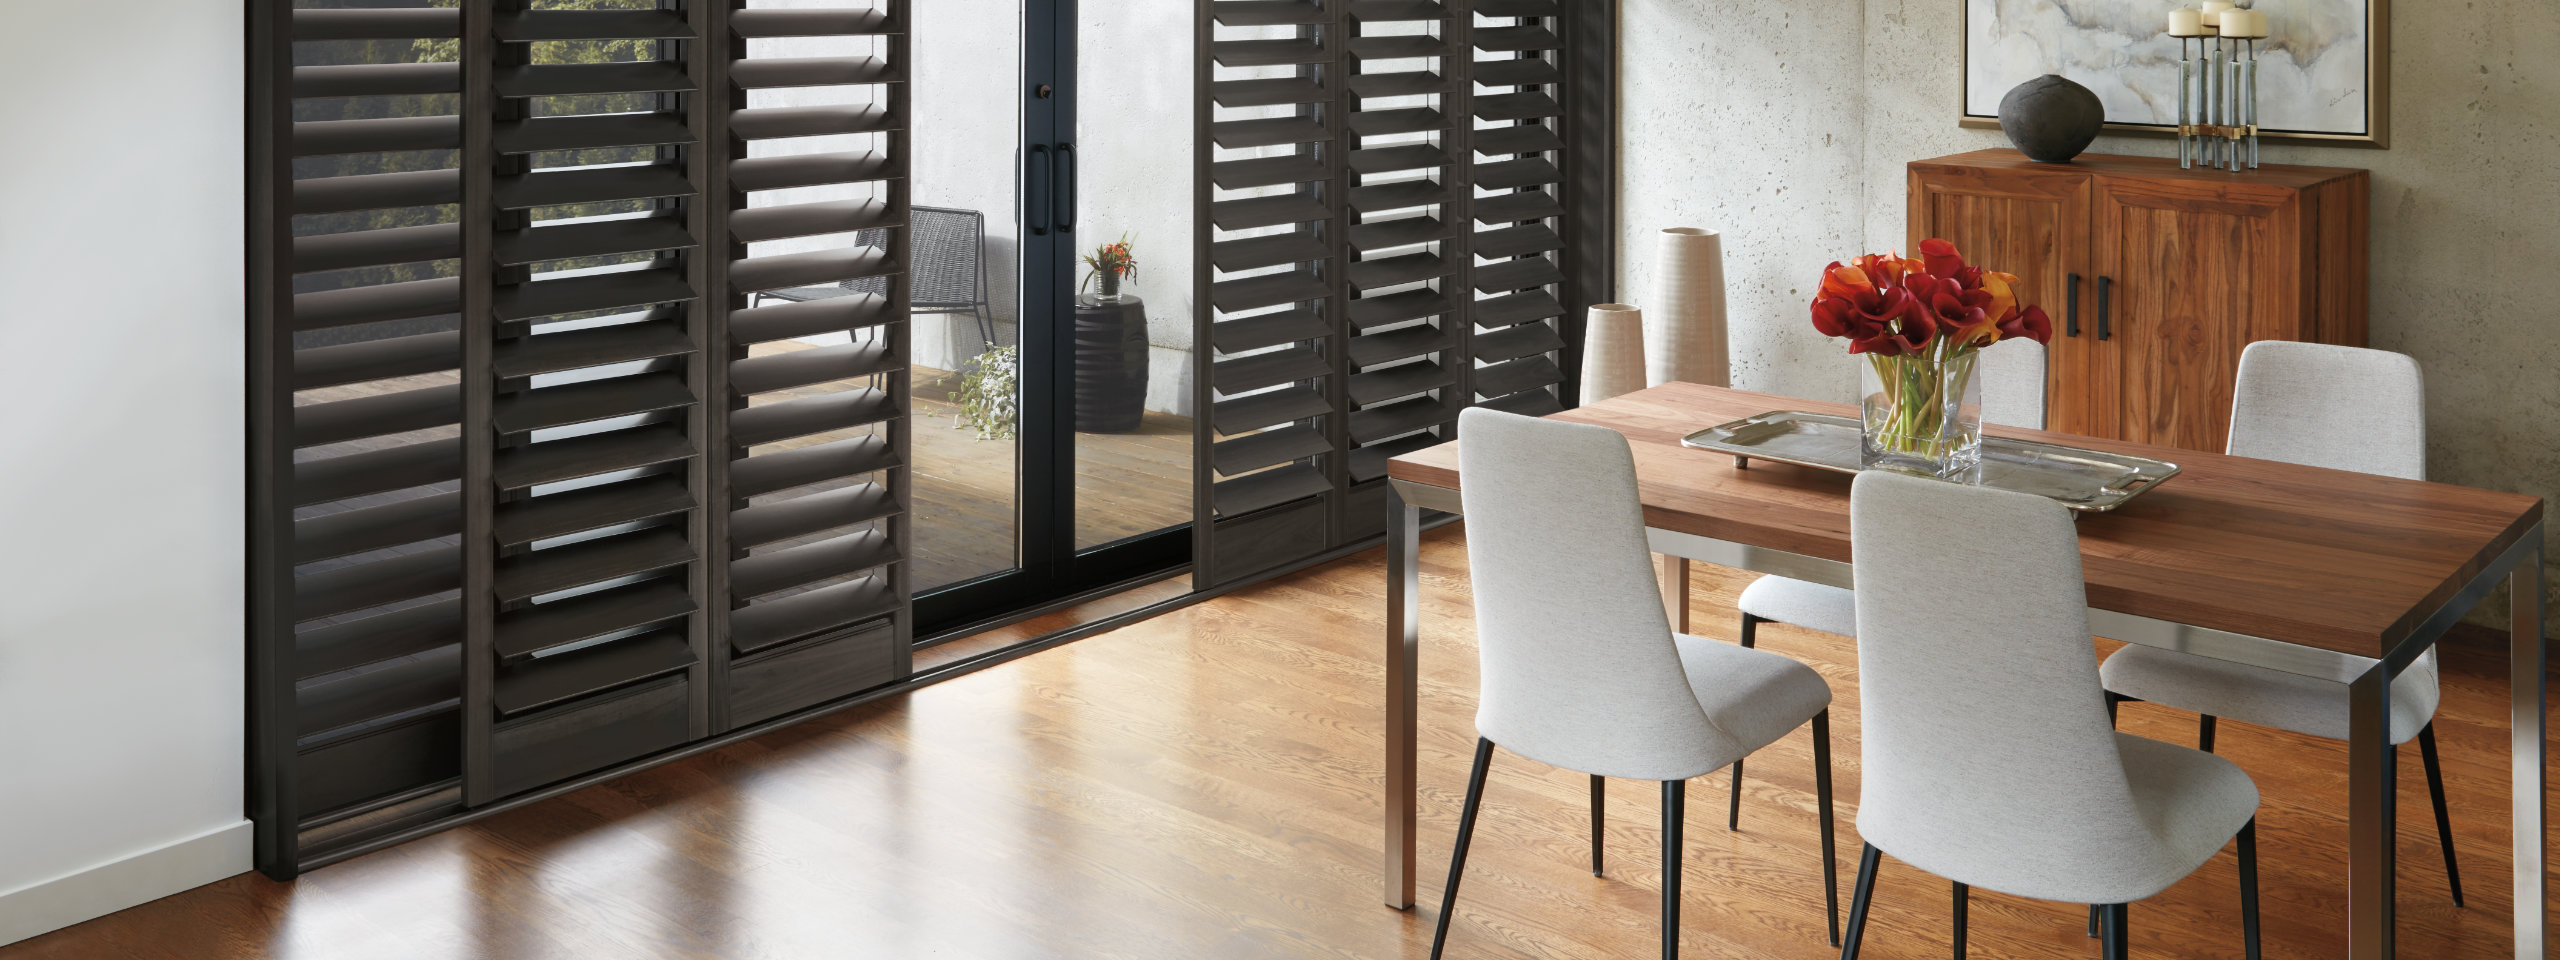 Plantation Shutters in Dining Room 2